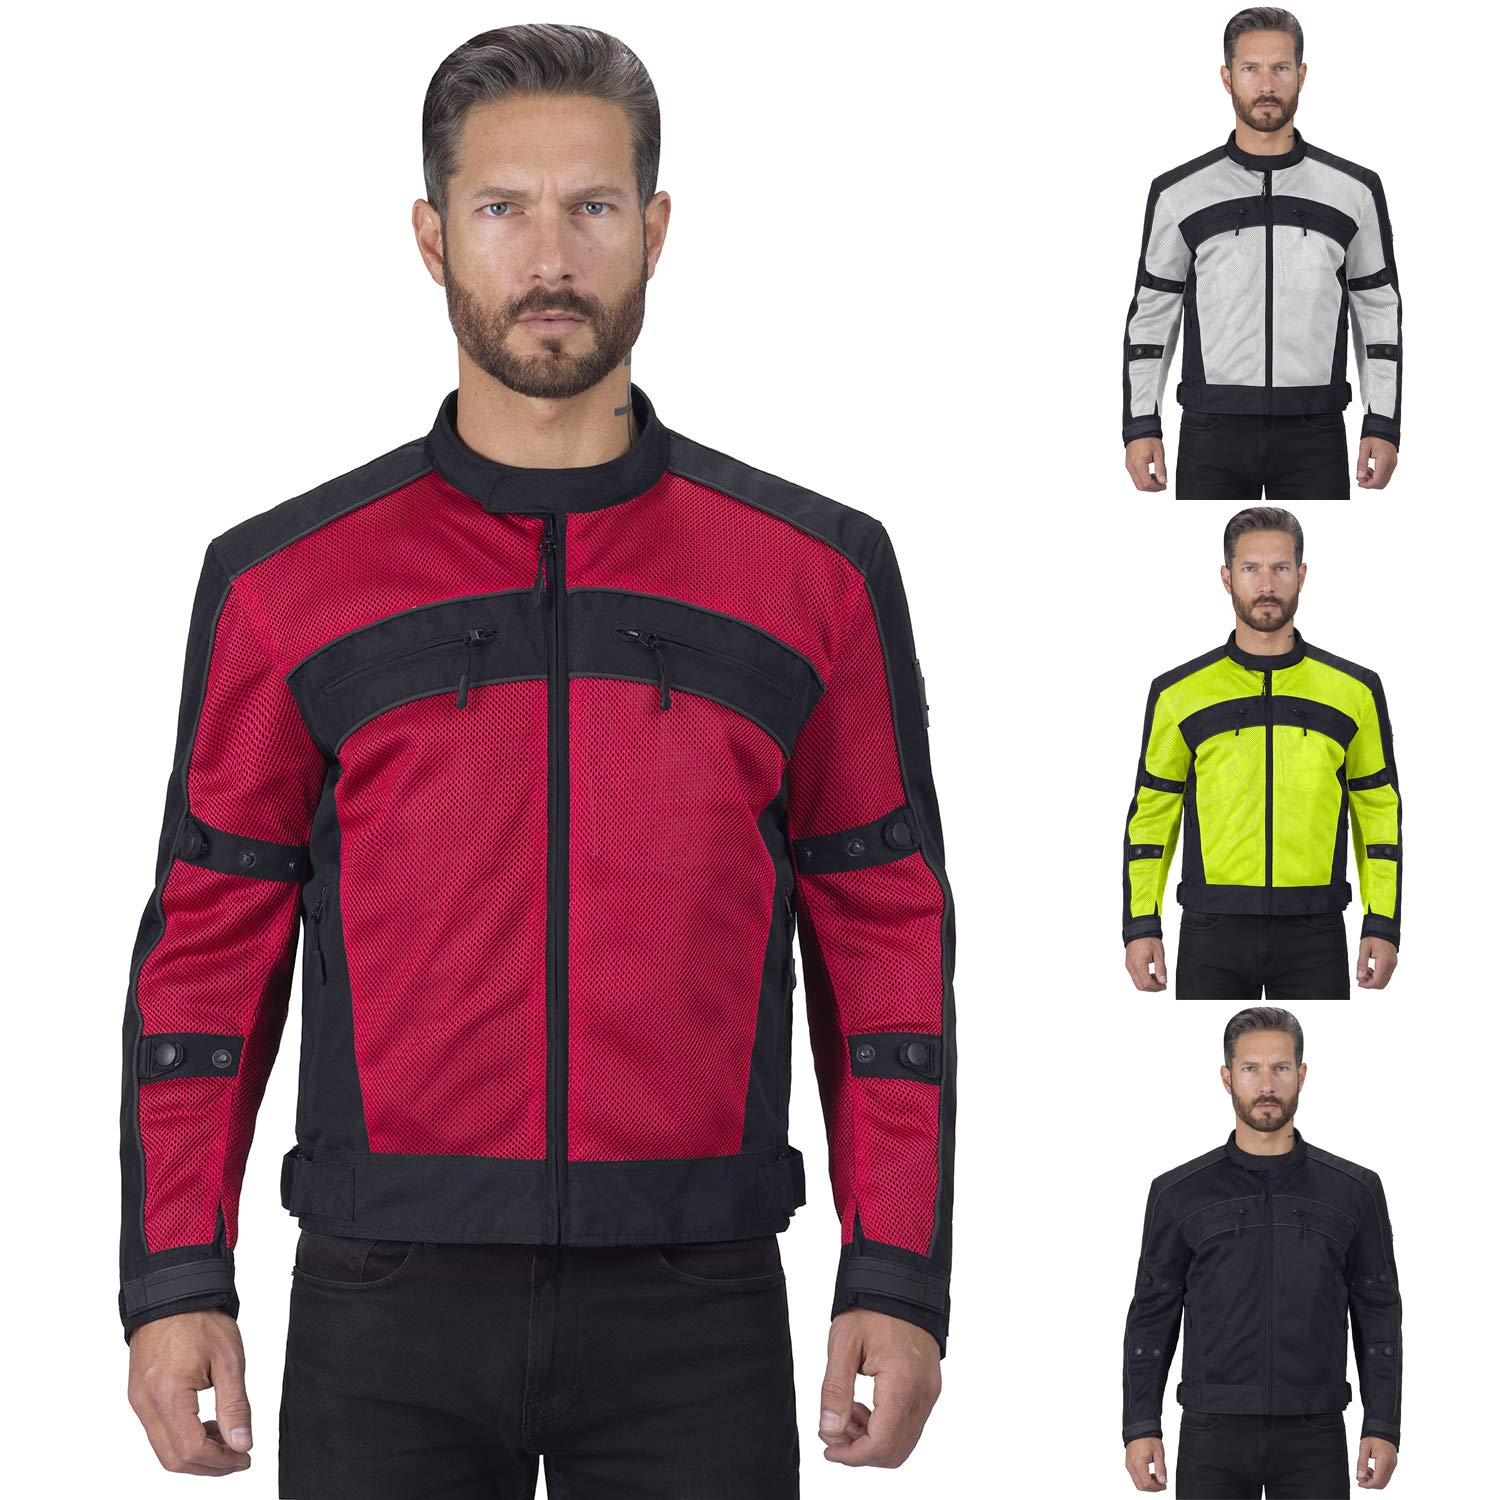 Viking Cycle Motorcycle Jackets for Men Ironside Men's Mesh Motorcycle Jacket (Red, X-Small) by Viking Cycle